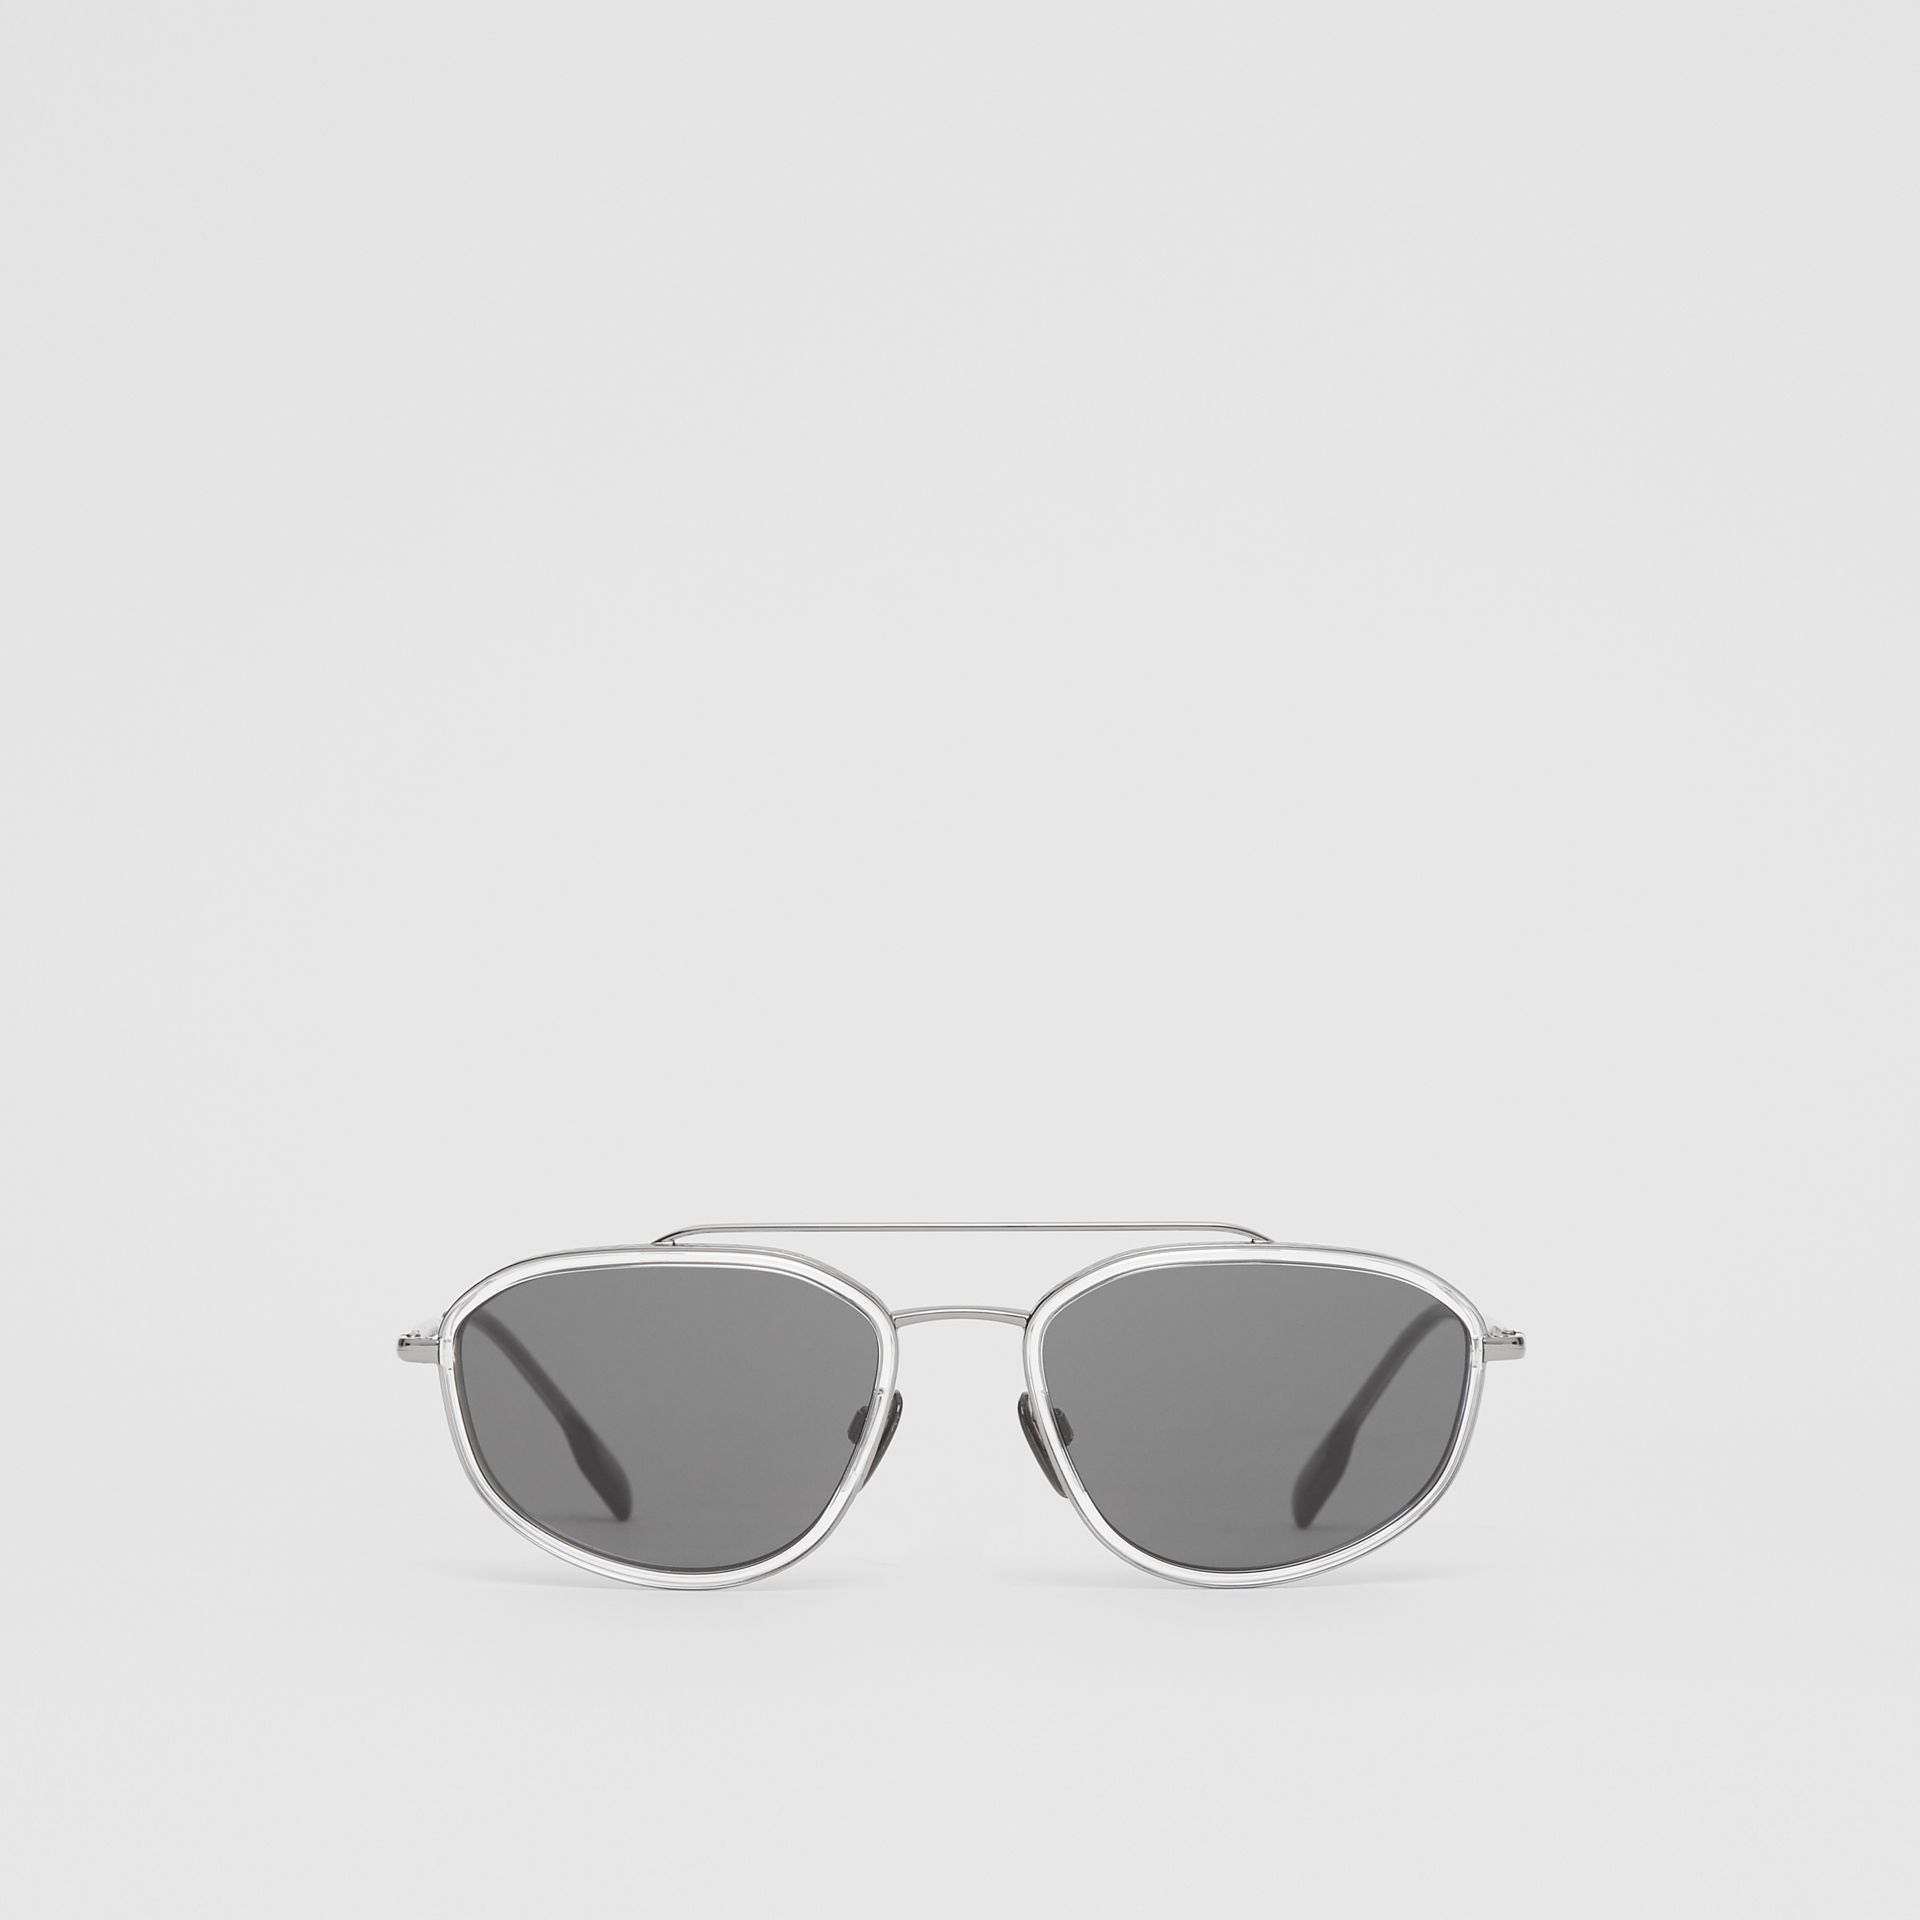 Geometric Navigator Sunglasses in Gunmetal Grey - Men | Burberry United States - gallery image 0